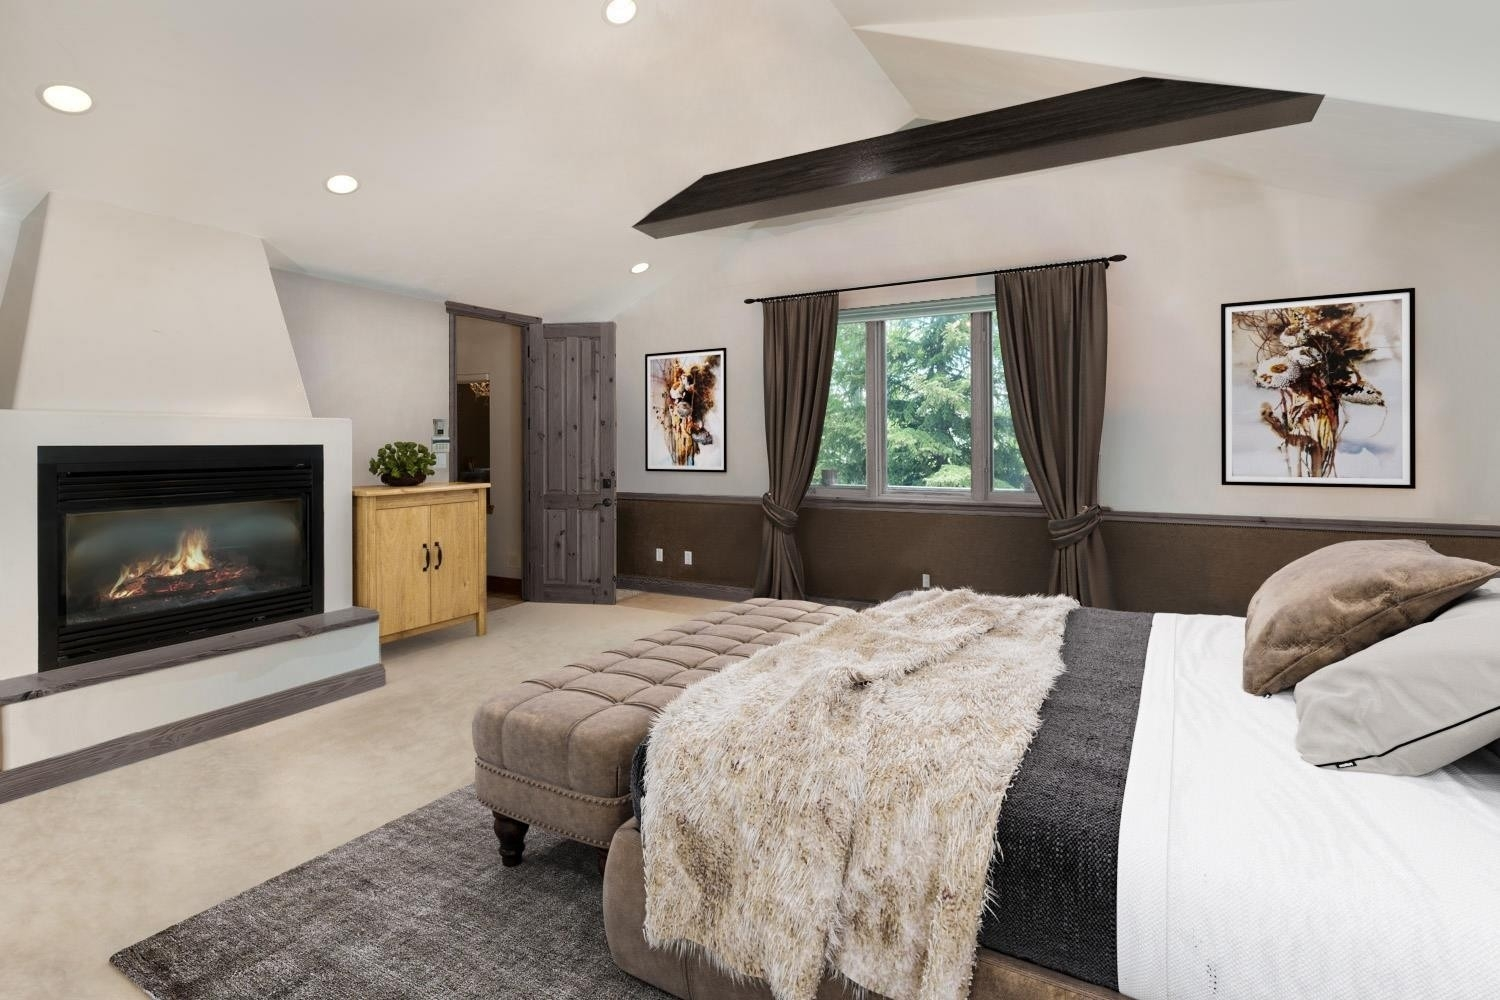 3. Single Family Homes for Sale at Snowmass Village, CO 81615